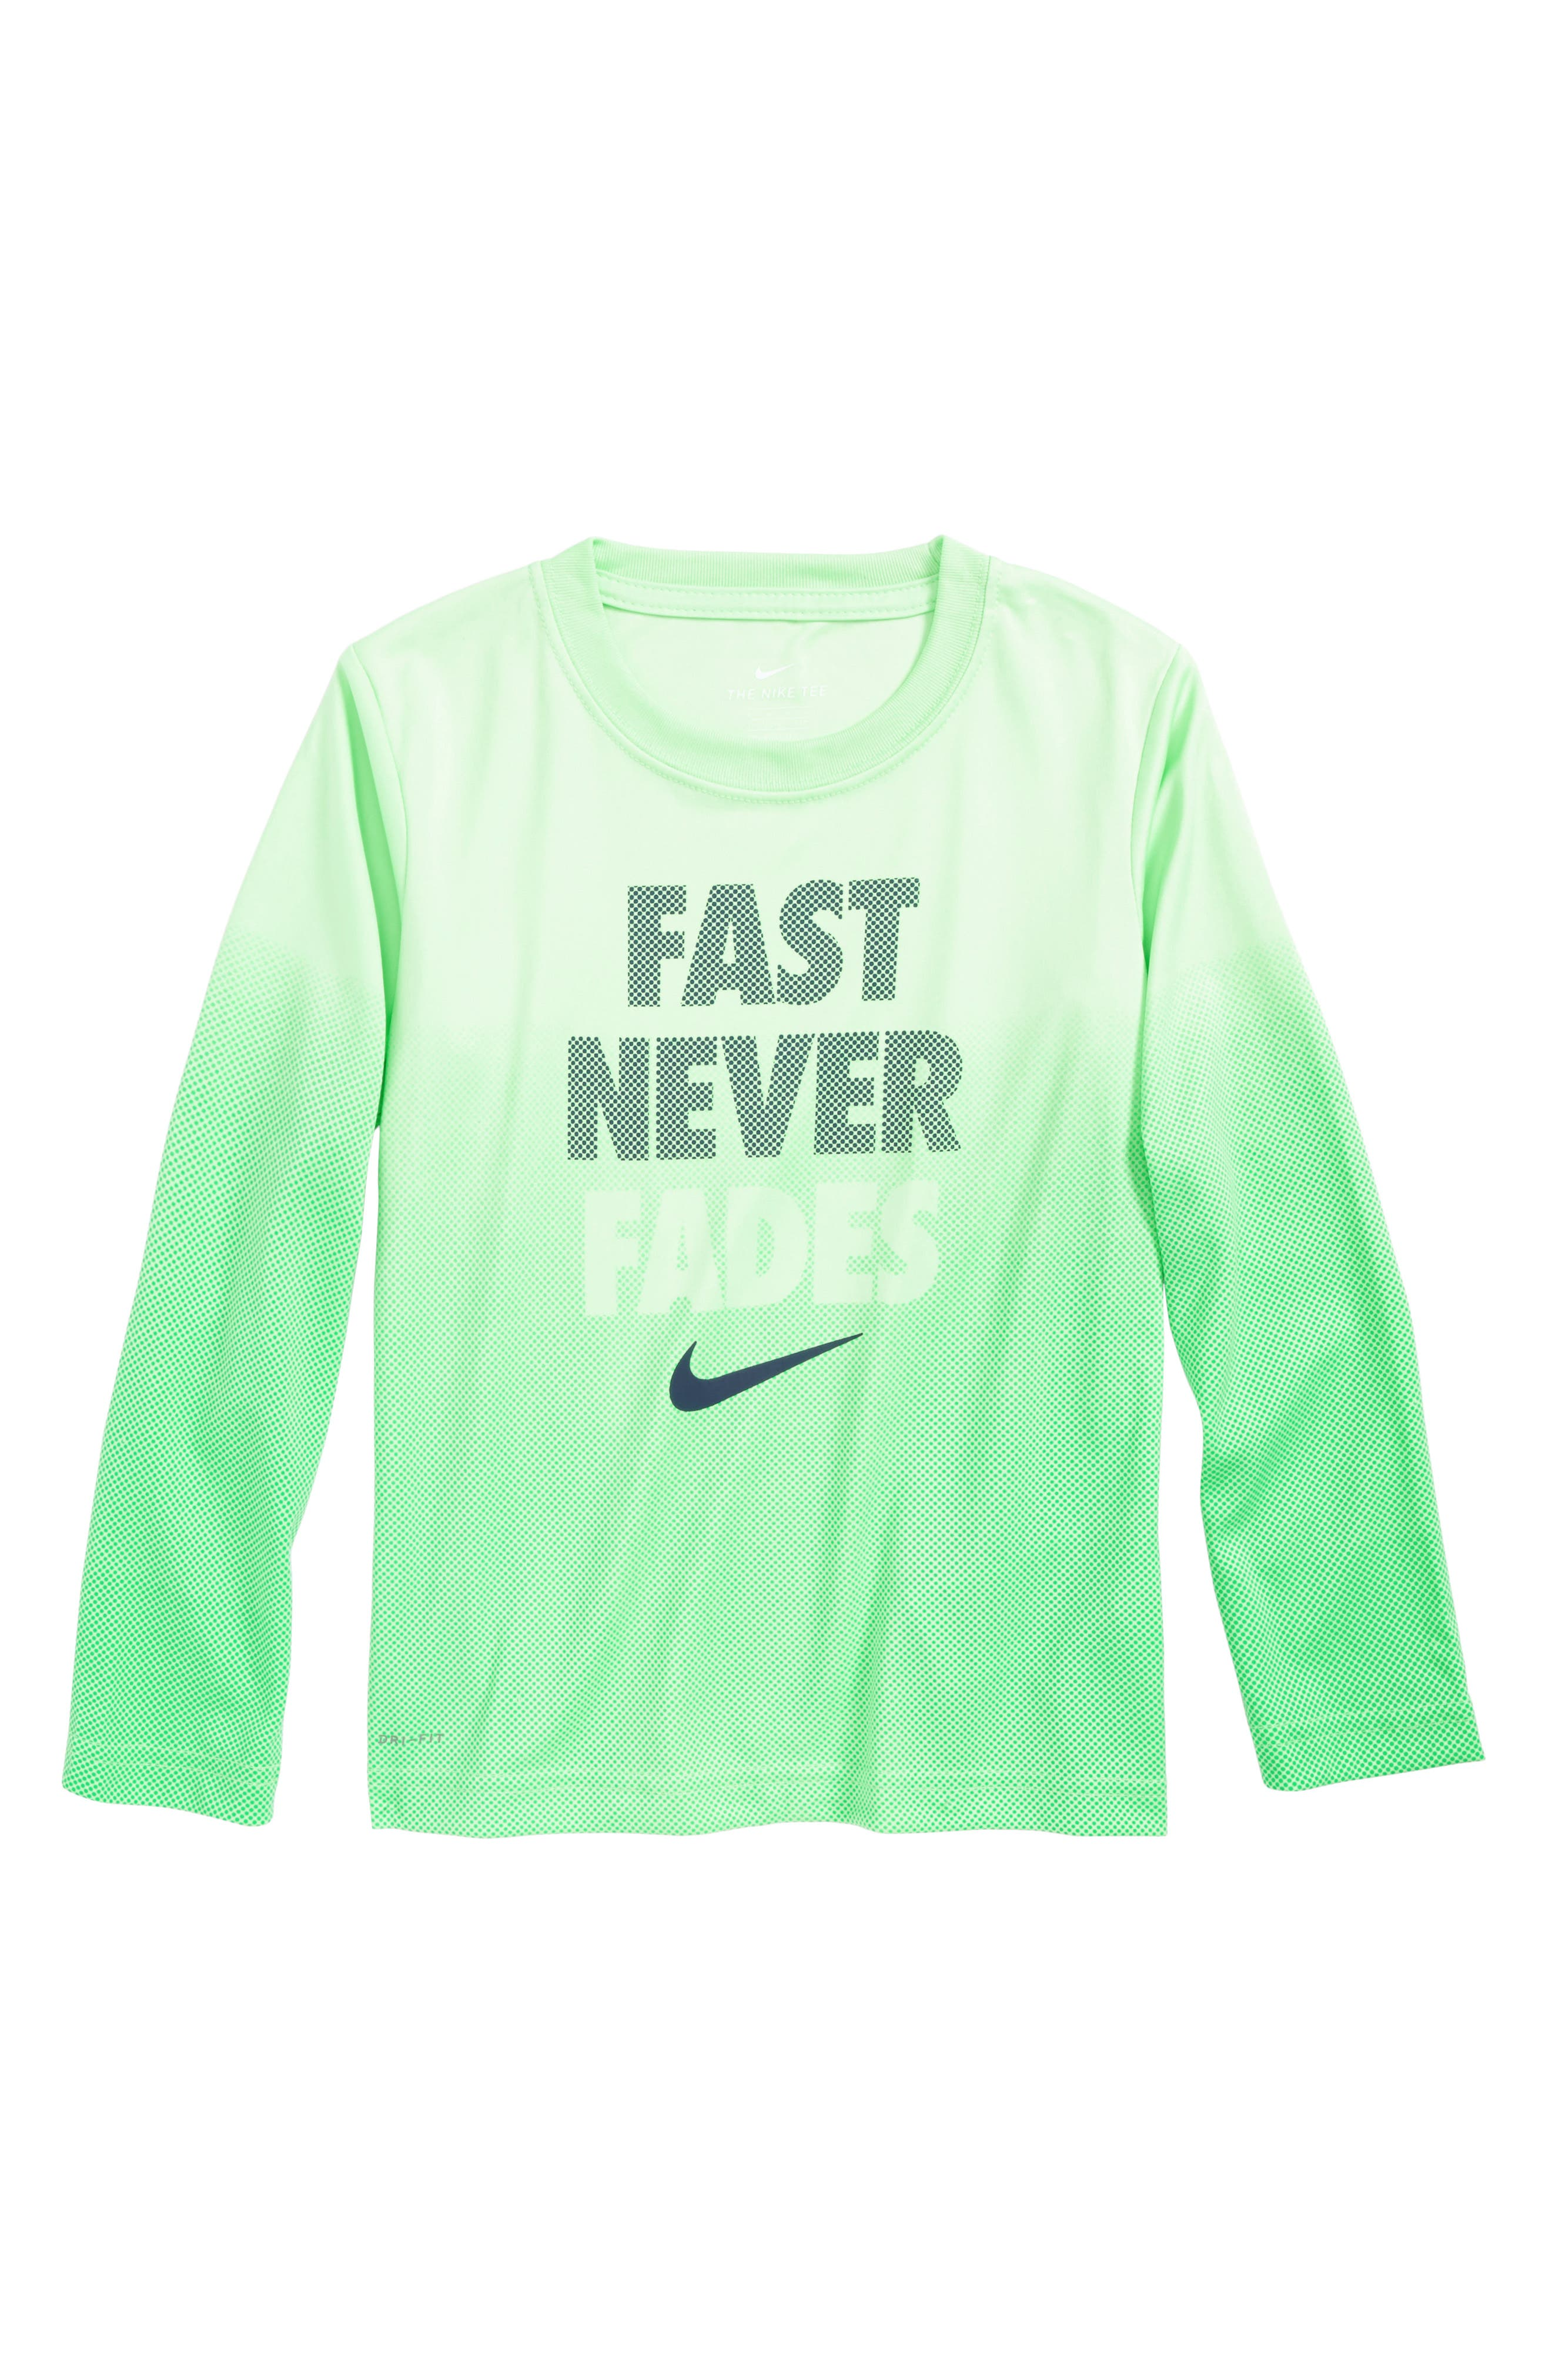 Nike Fast Never Fades Long Sleeve T-Shirt (Toddler Boys & Little Boys)